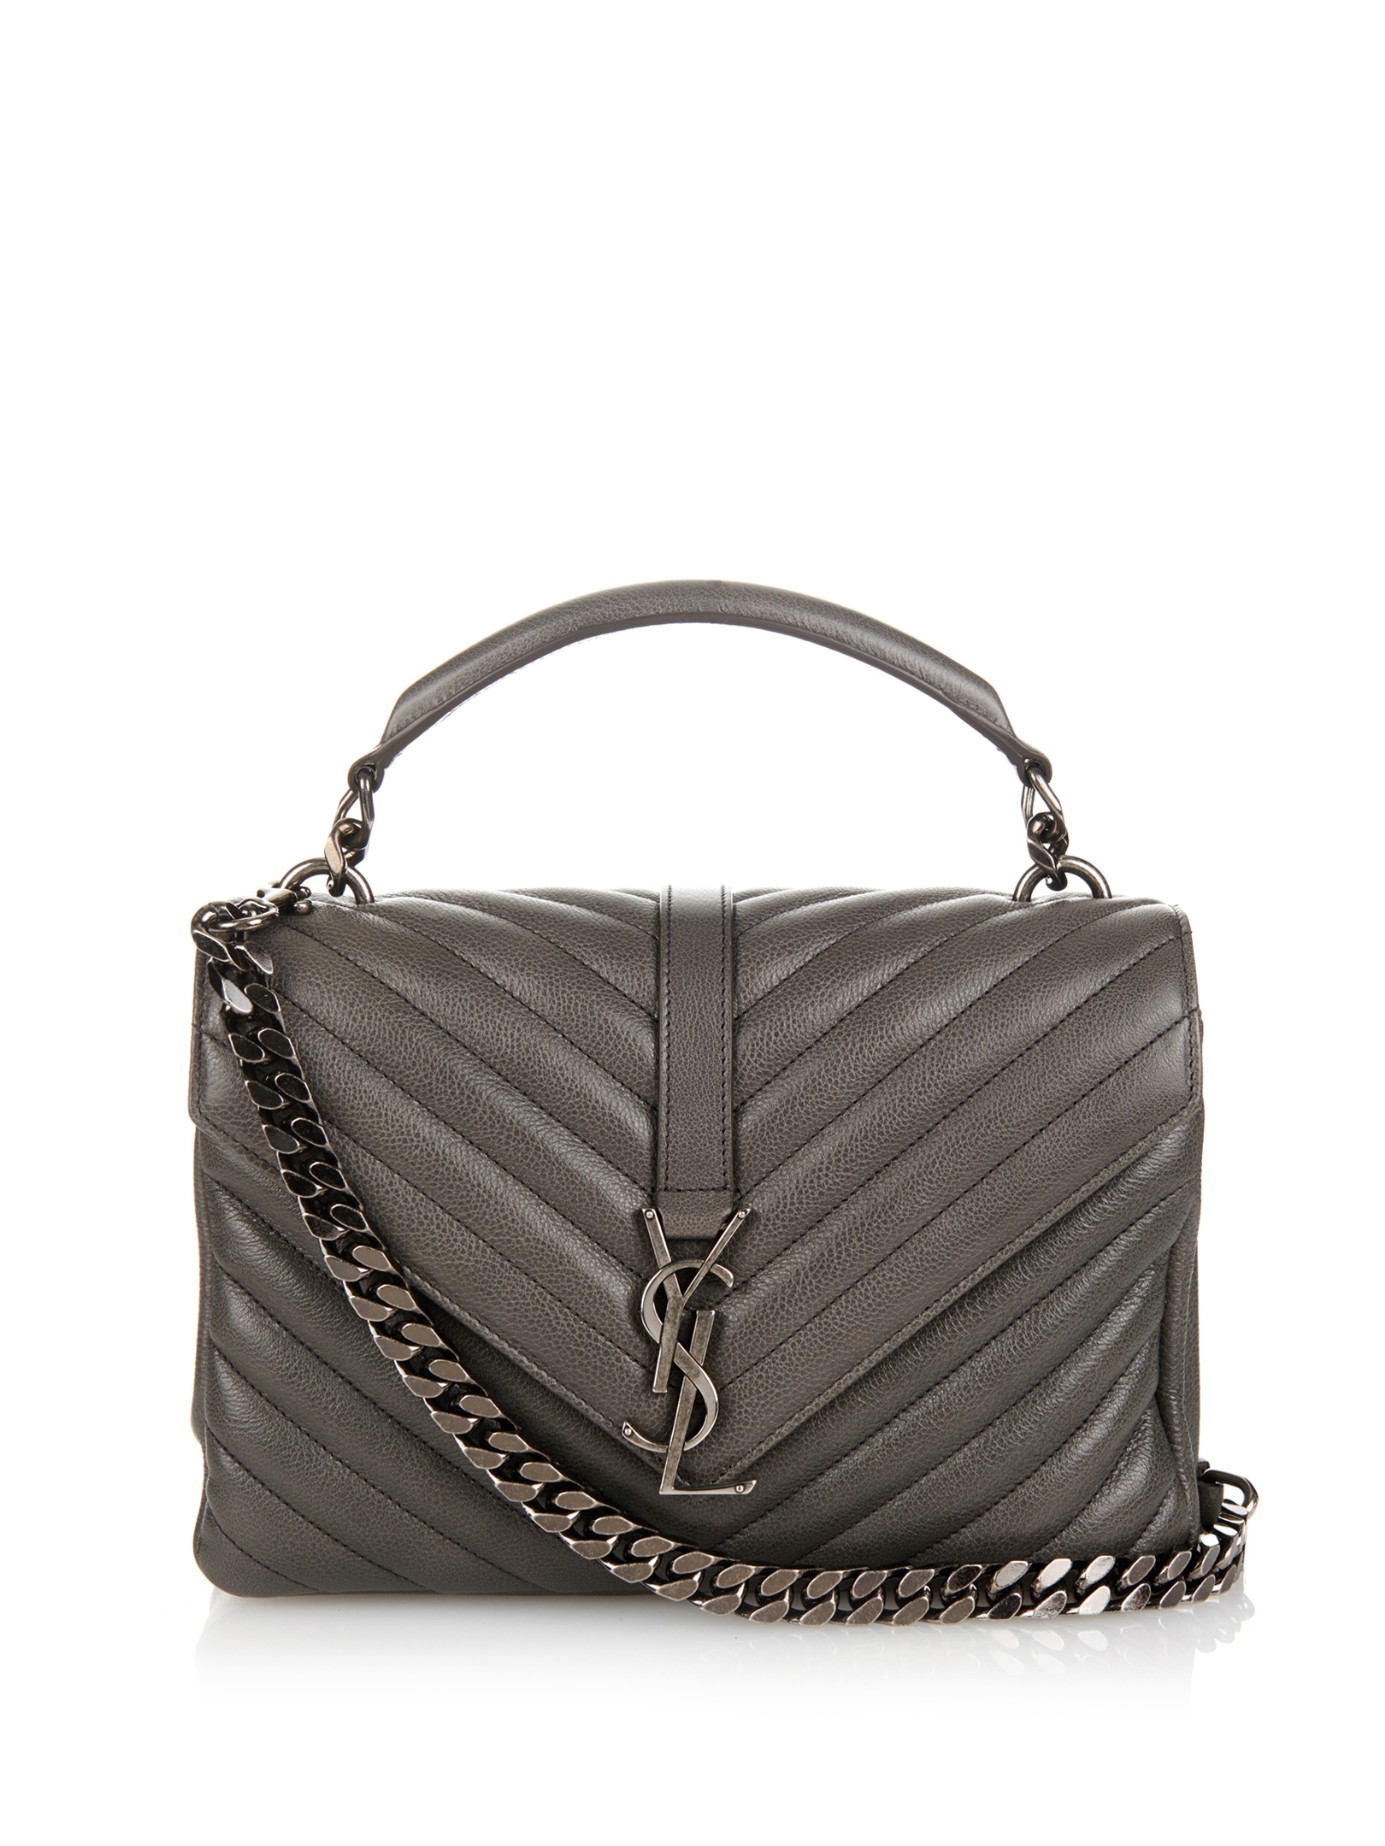 04b533b87a Lyst - Saint laurent Monogram College Small Quilted .